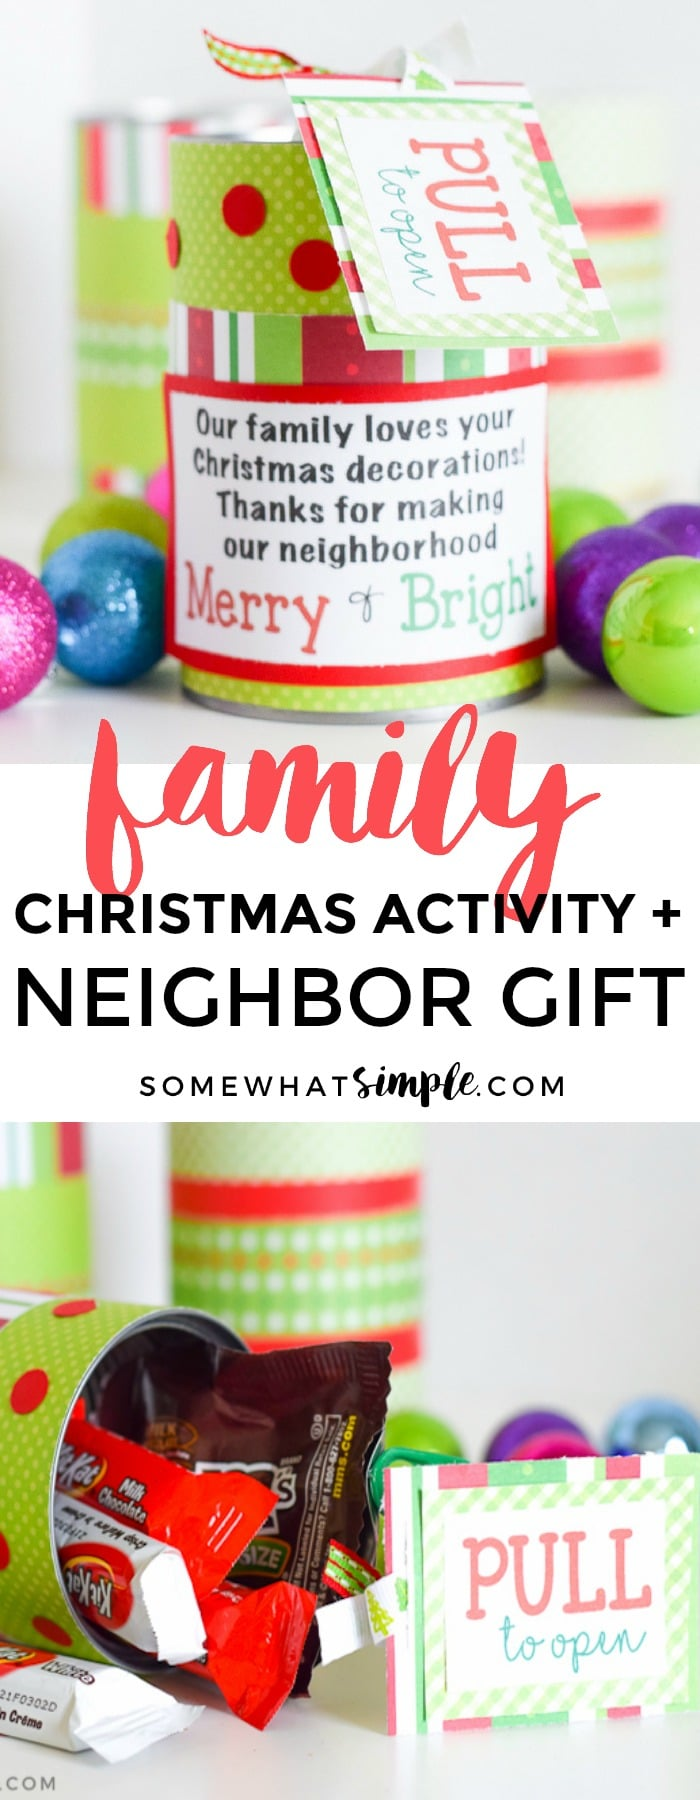 Spread some holiday cheer with these Christmas Gifts for Neighbors - a fun treat in a can! via @somewhatsimple